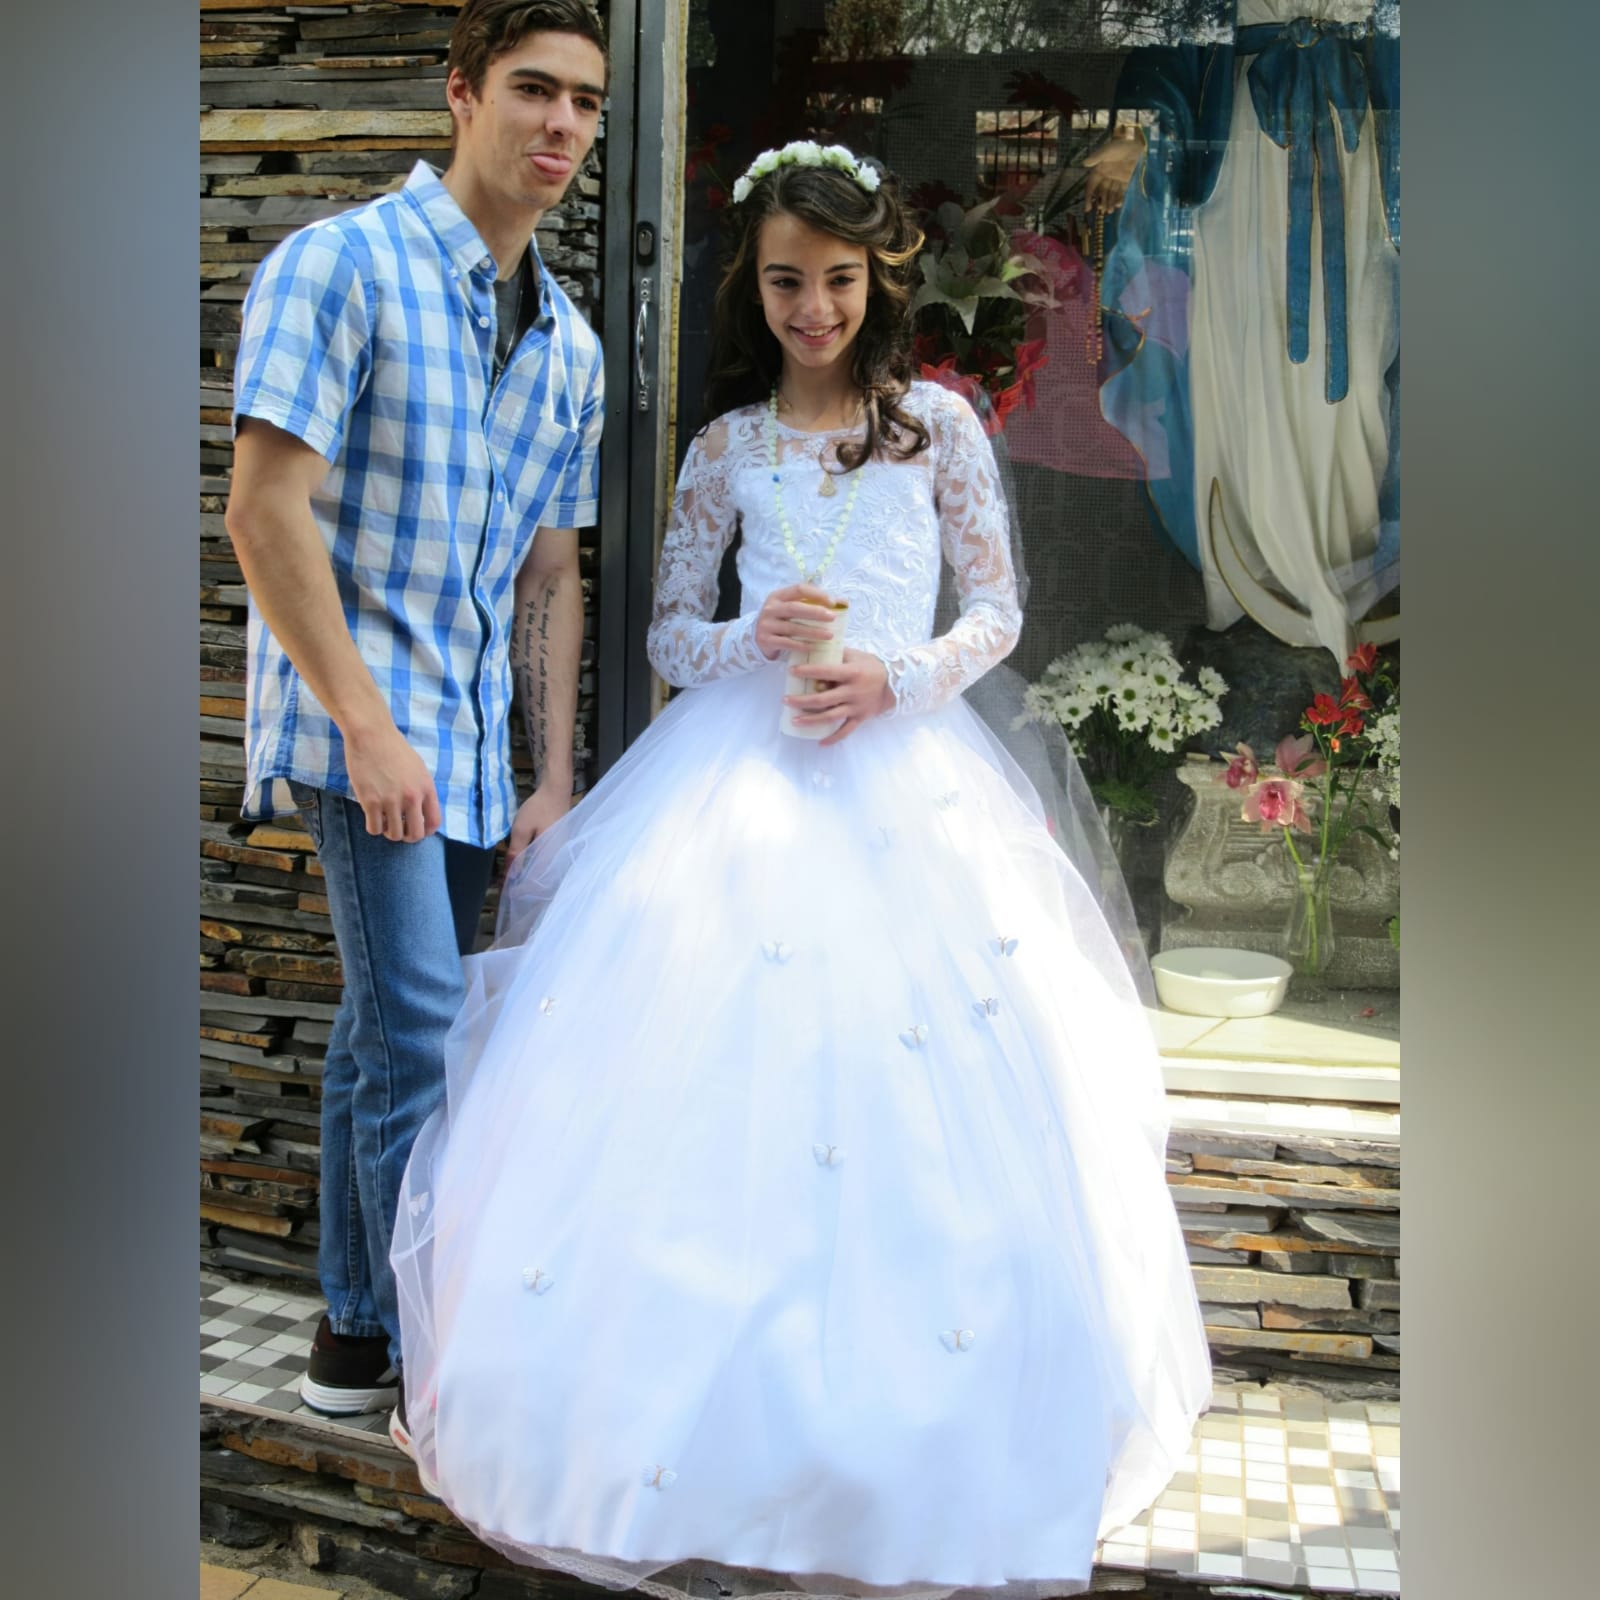 White holy communion ball gown dress 3 white holy communion ball gown dress. With a lace bodice. Long lace sleeves. Holy communion dress detailed with butterflies.